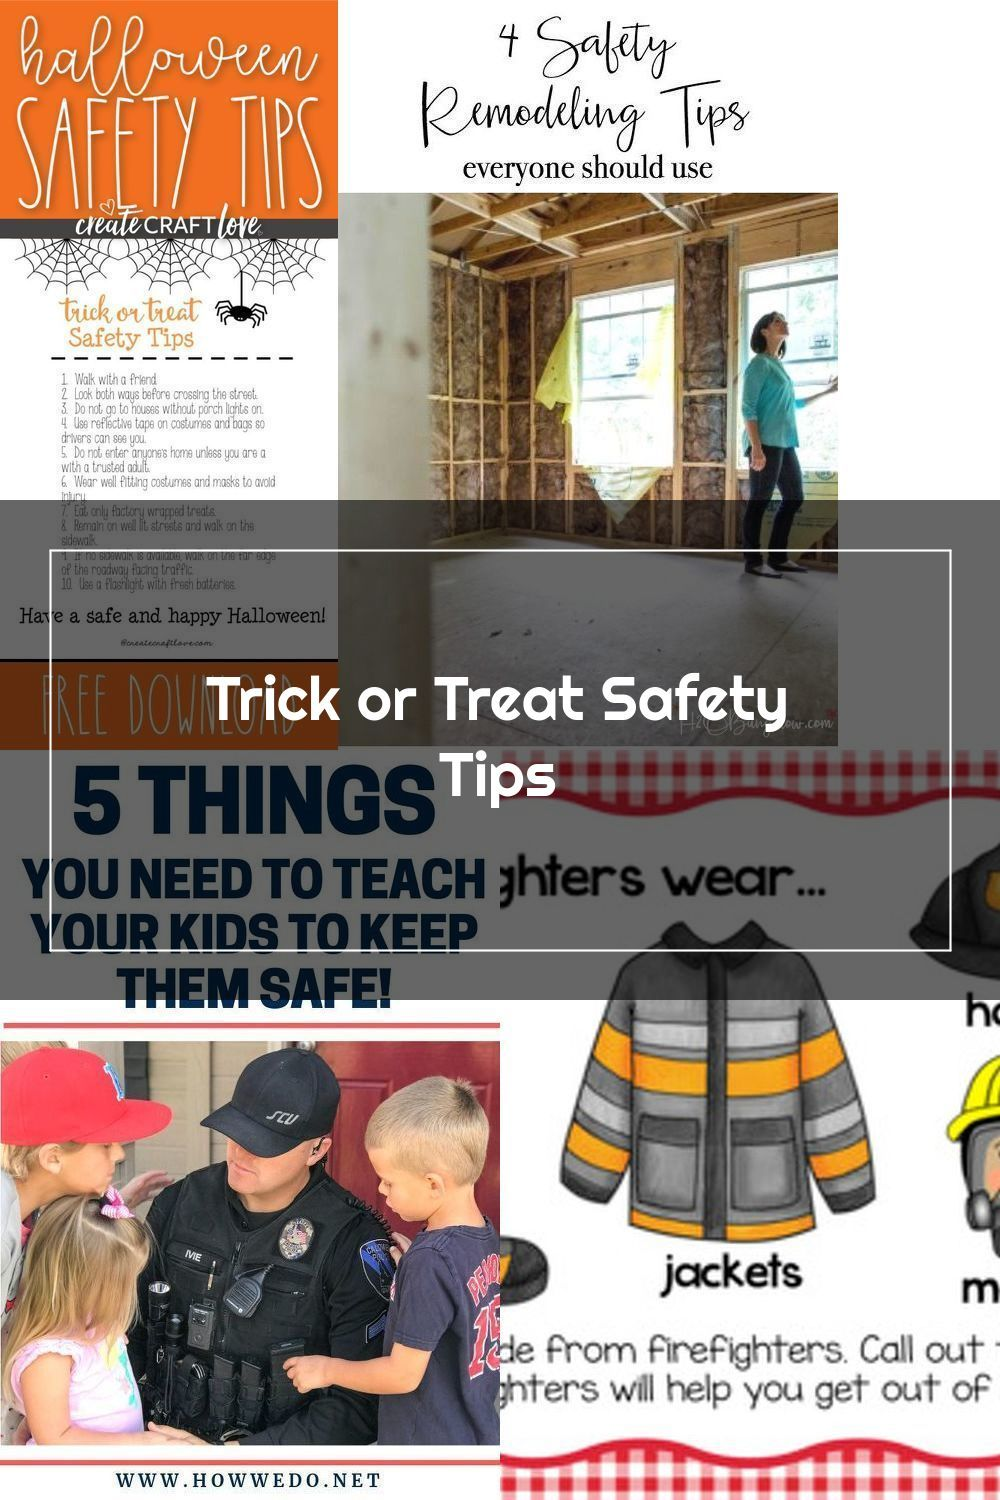 Halloween Safety Tips for Pets Halloween safety tips